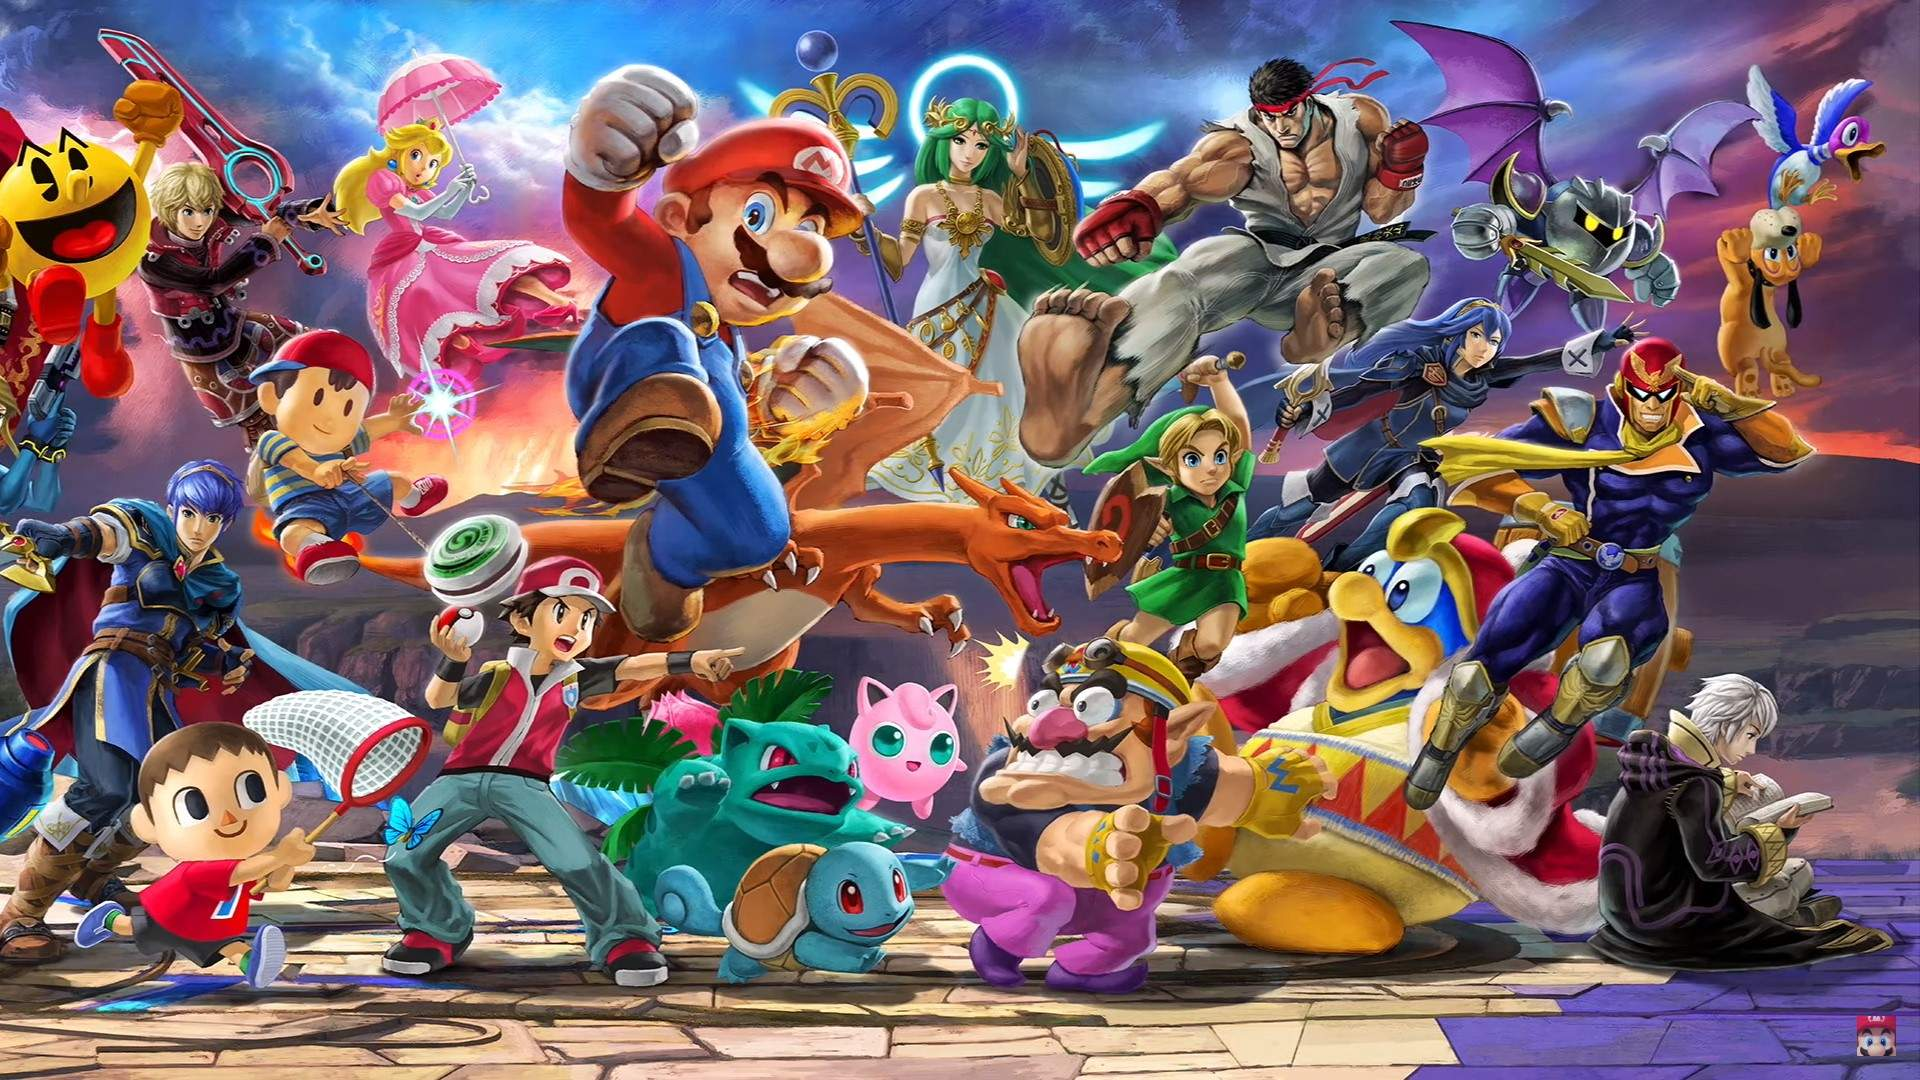 New Tremendous Smash Bros. Presentation Reveals the Fifth DLC Fighter This Week